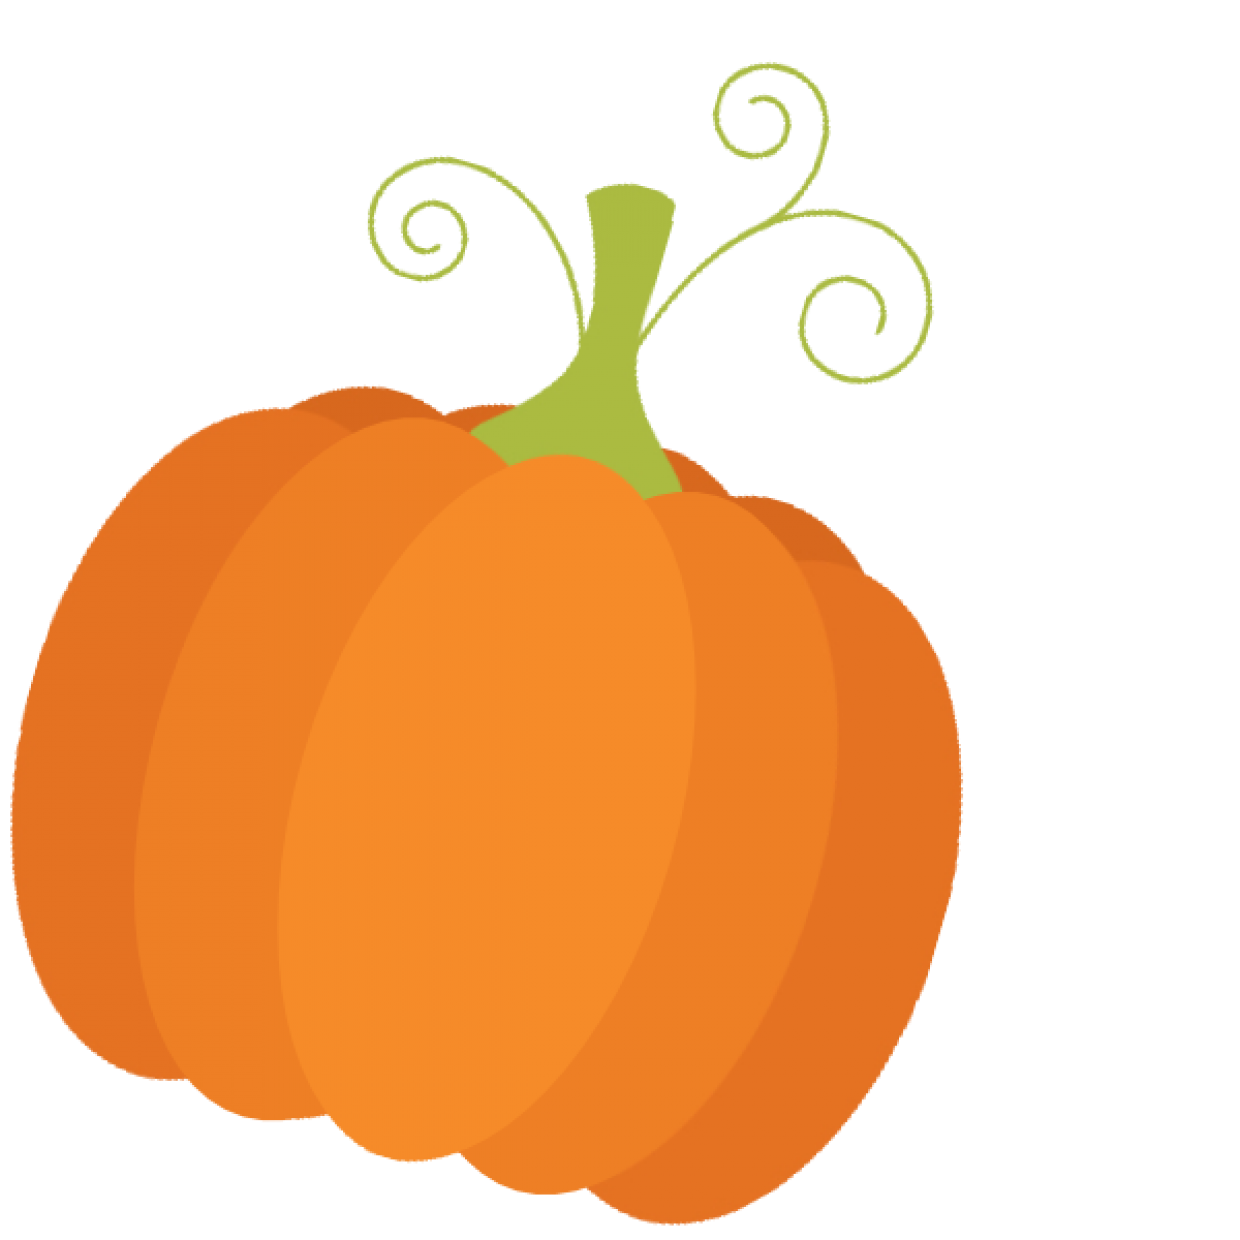 Pumpkin patch clipart png svg freeuse Pumpkin Patch | Ufford Hills Ag svg freeuse